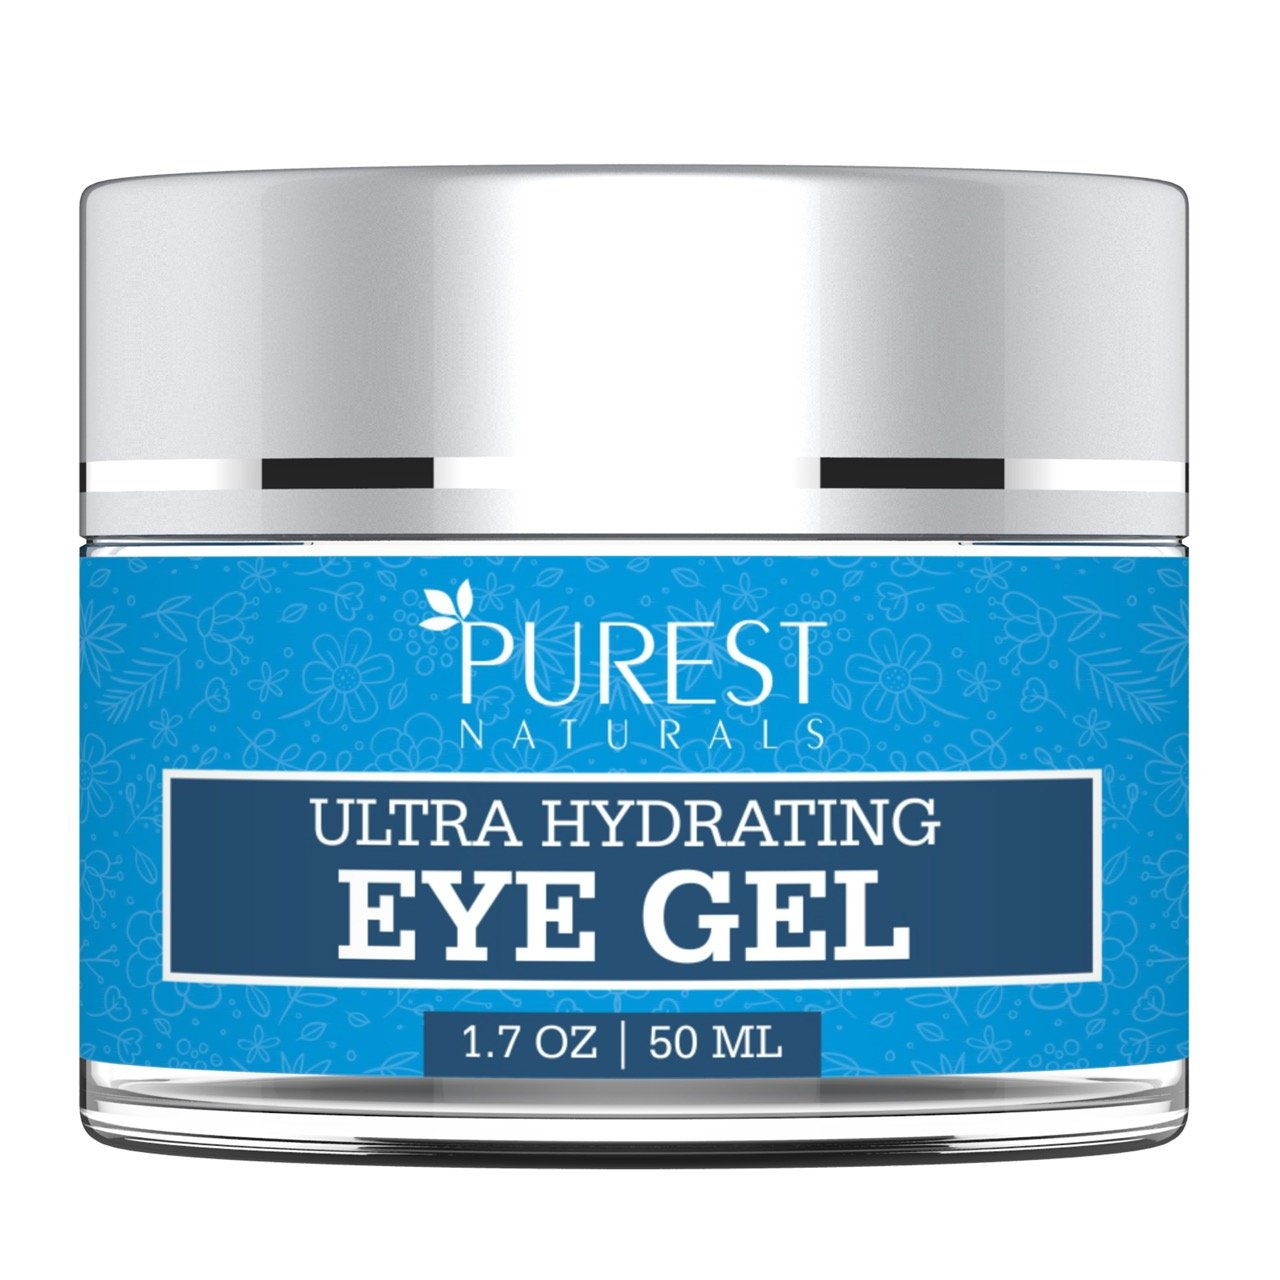 Purest Naturals Anti Aging Qv Eye Cream Gel For Dark Circles